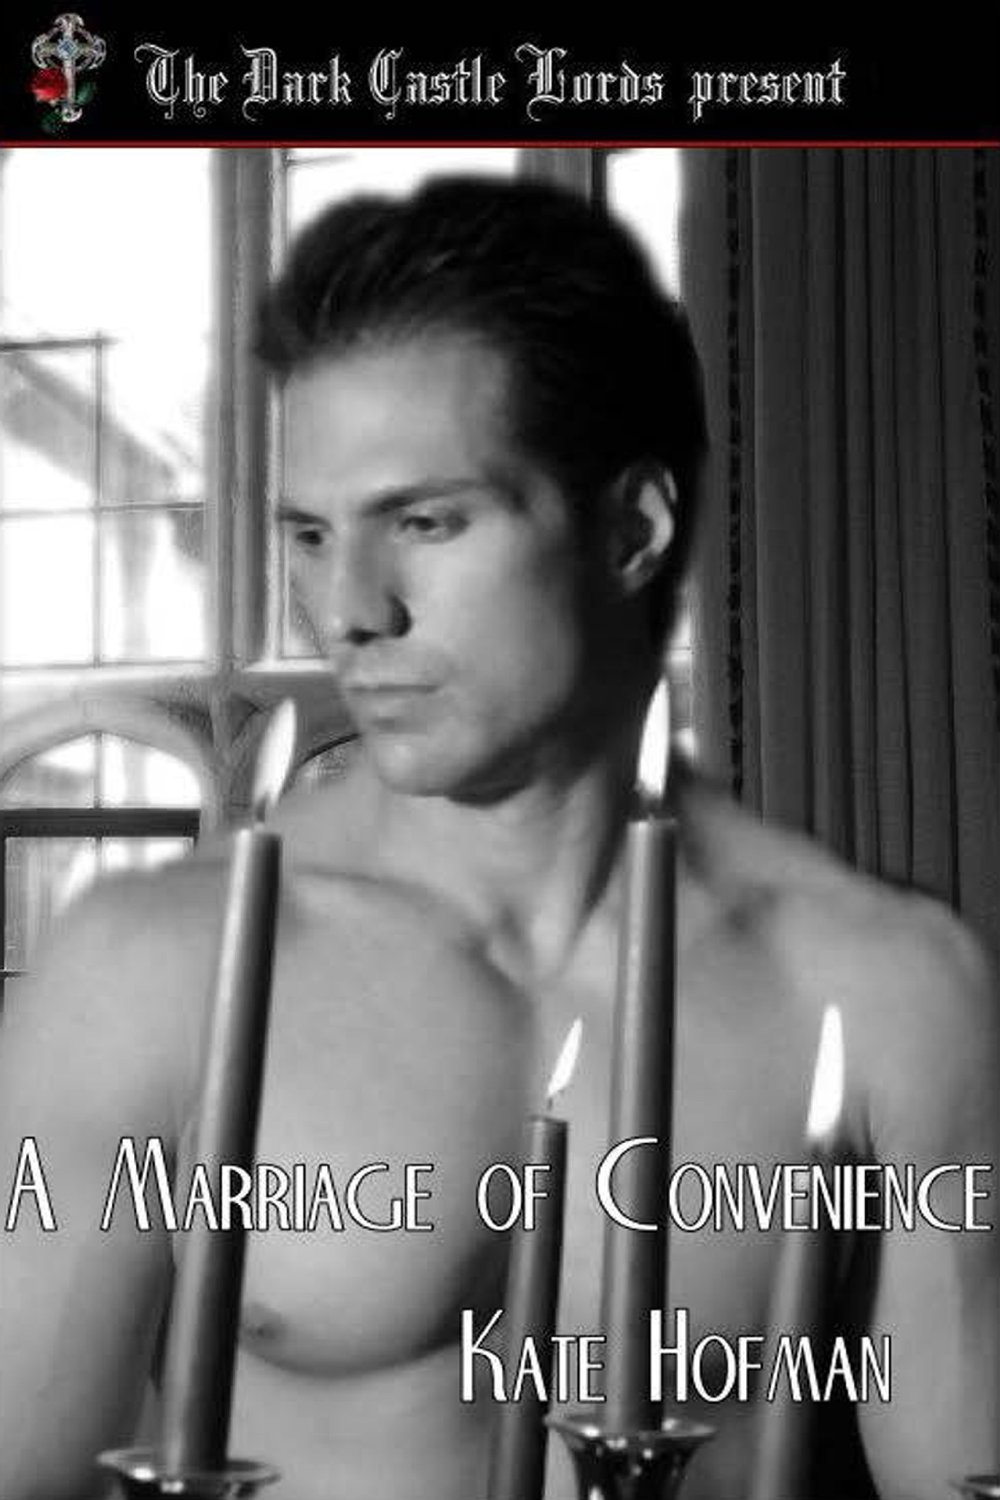 A Marriage of Convenience by Kate Hofman